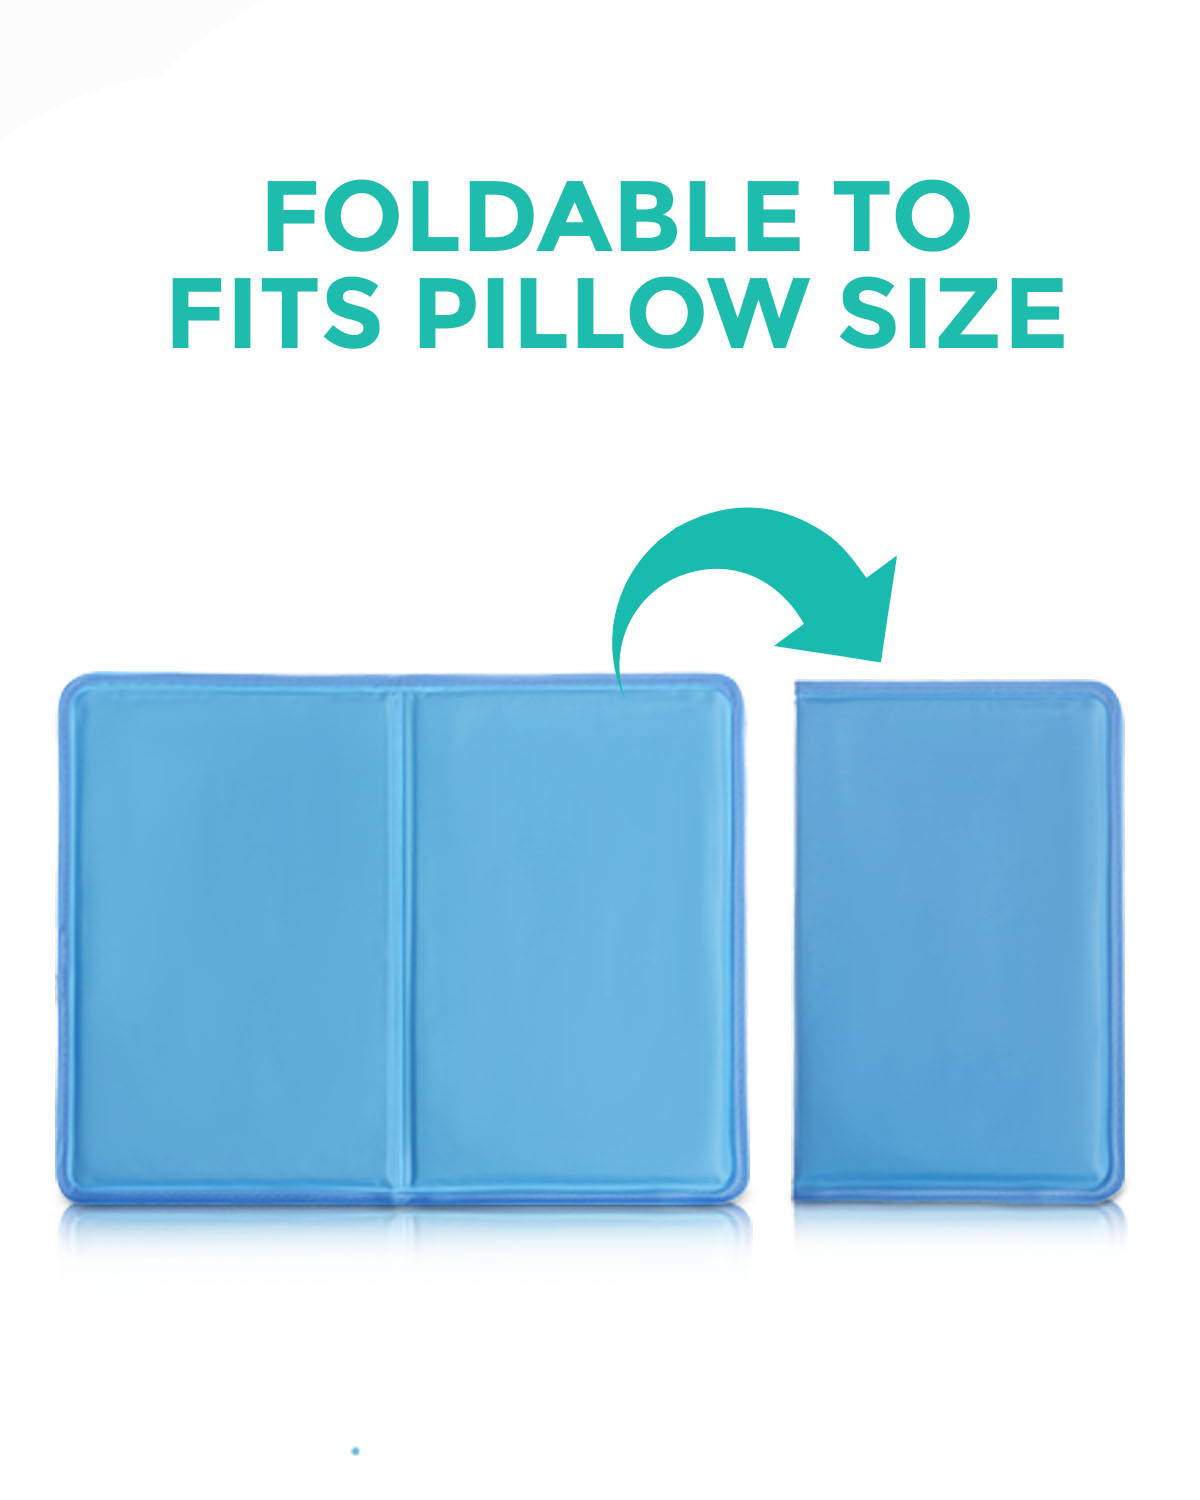 Foldable To Fit Into Your Pillow